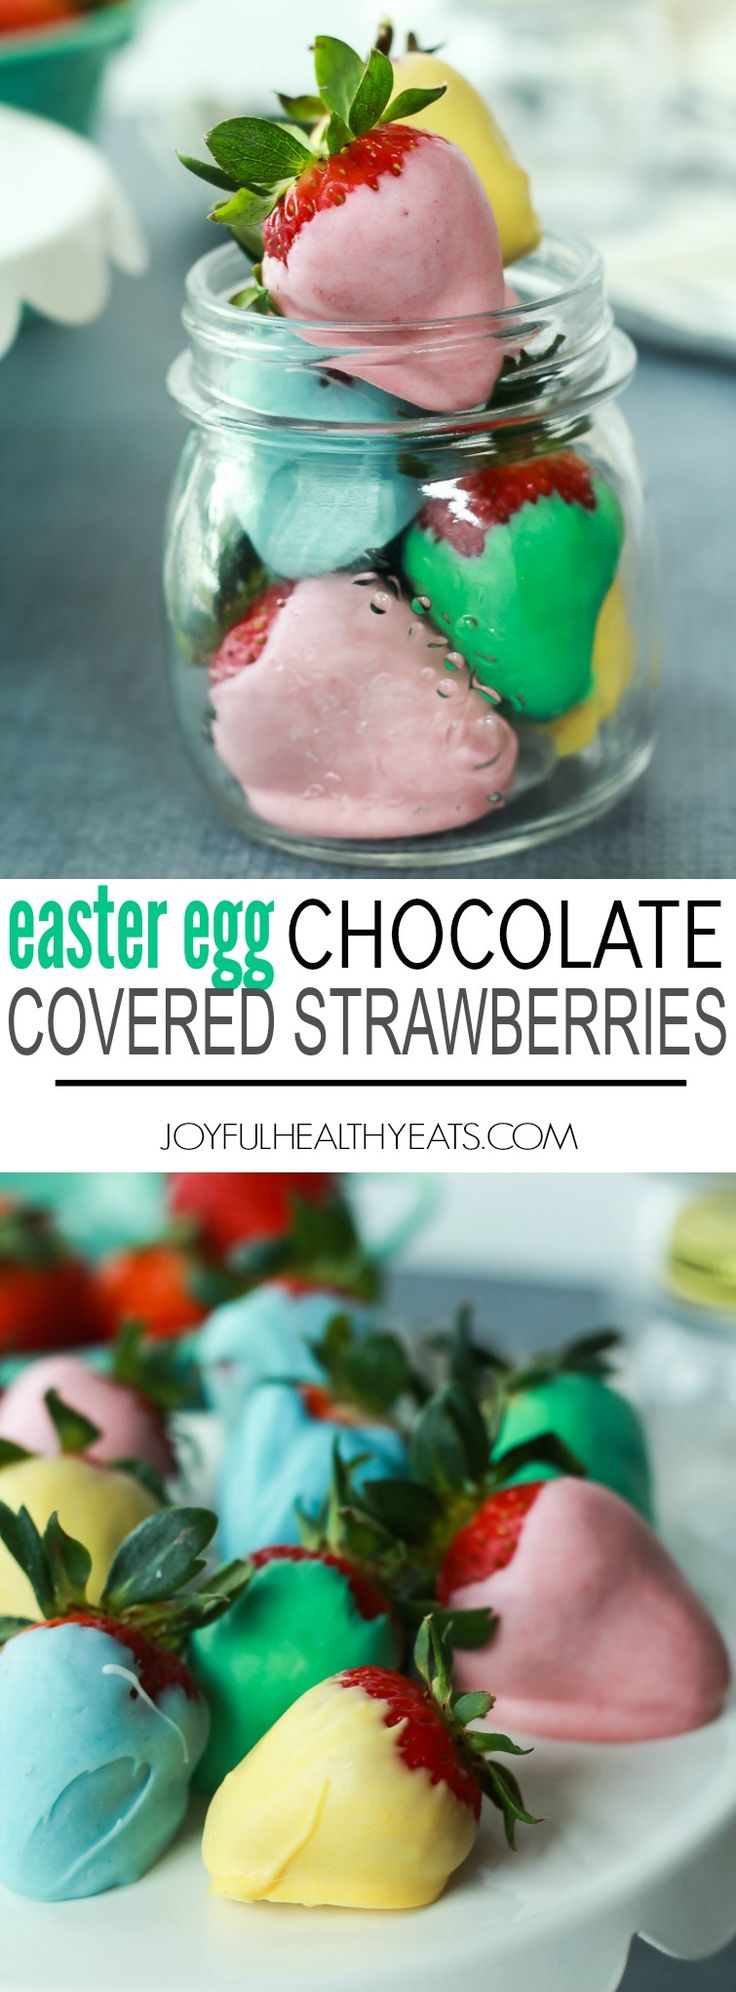 .~Easter Egg Chocolate Covered Strawberries Recipe using three ingredients - a fun festive dessert to make with your kids for Easter! | joyfulhealthyeats.com #eastereggcrafts~.